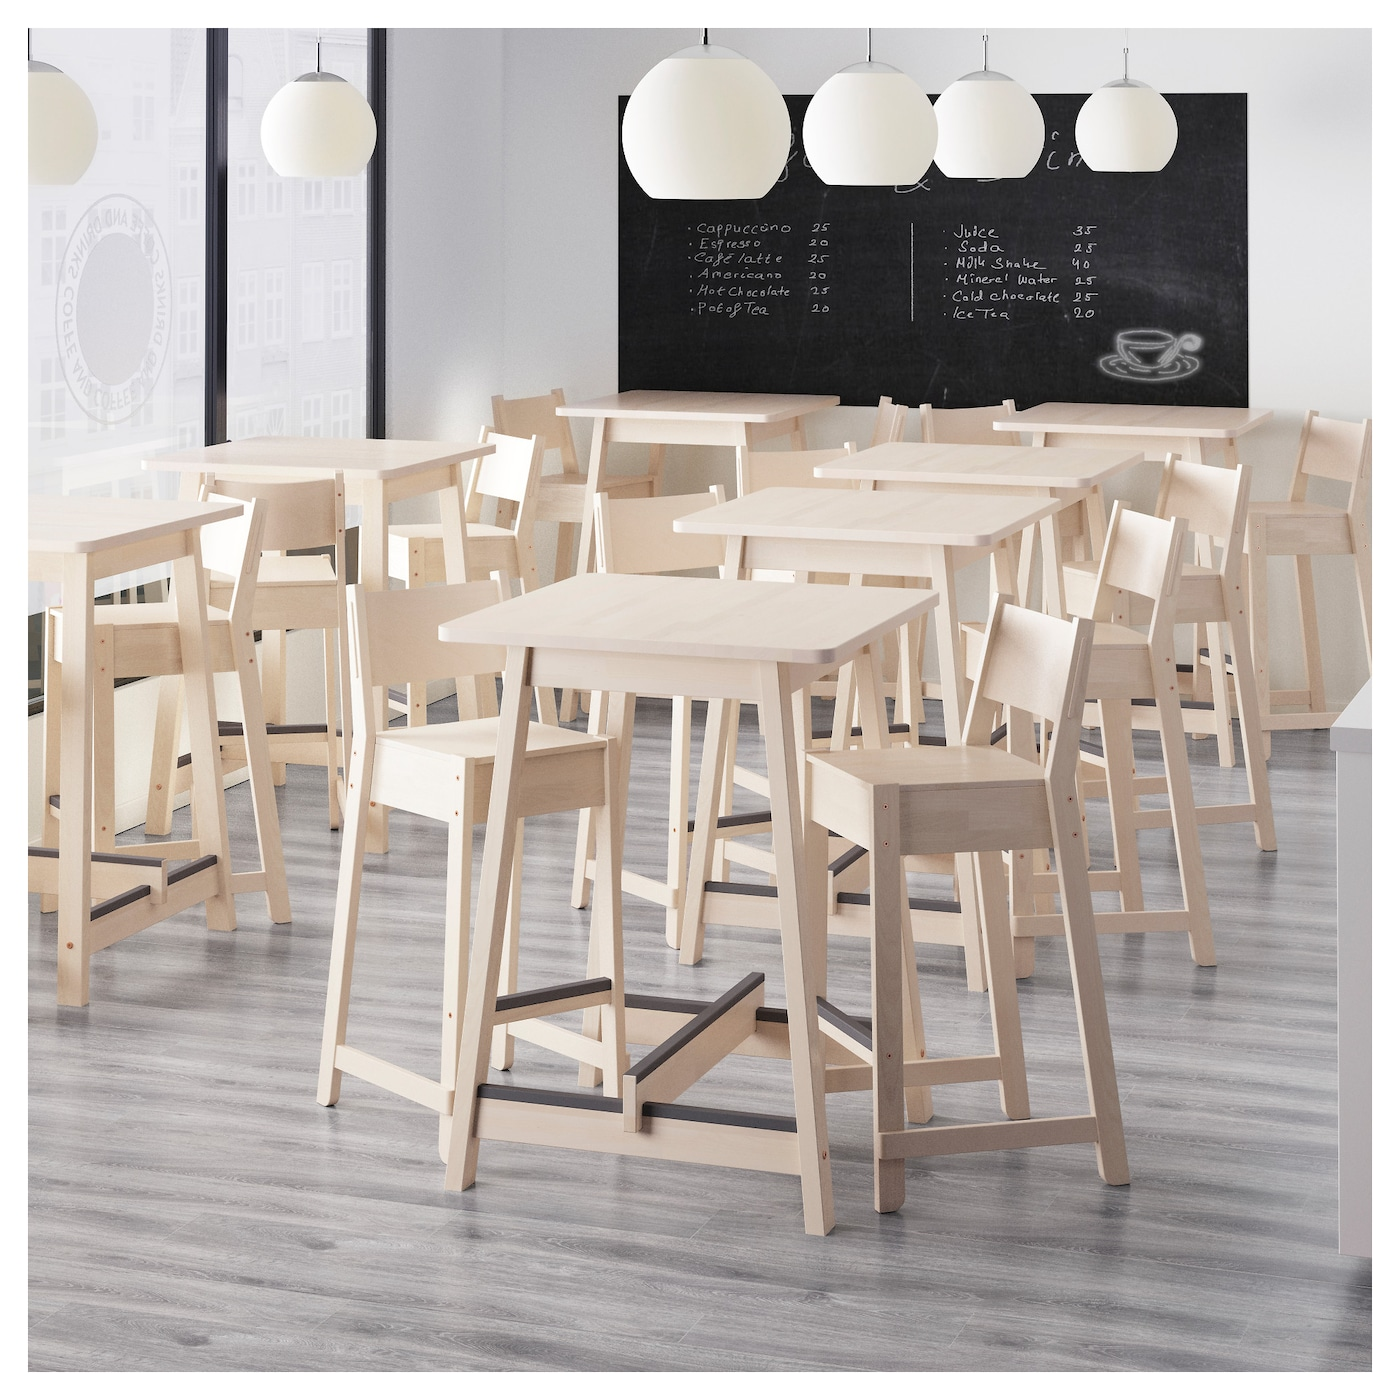 norr ker bar table white birch 74x74 cm ikea. Black Bedroom Furniture Sets. Home Design Ideas